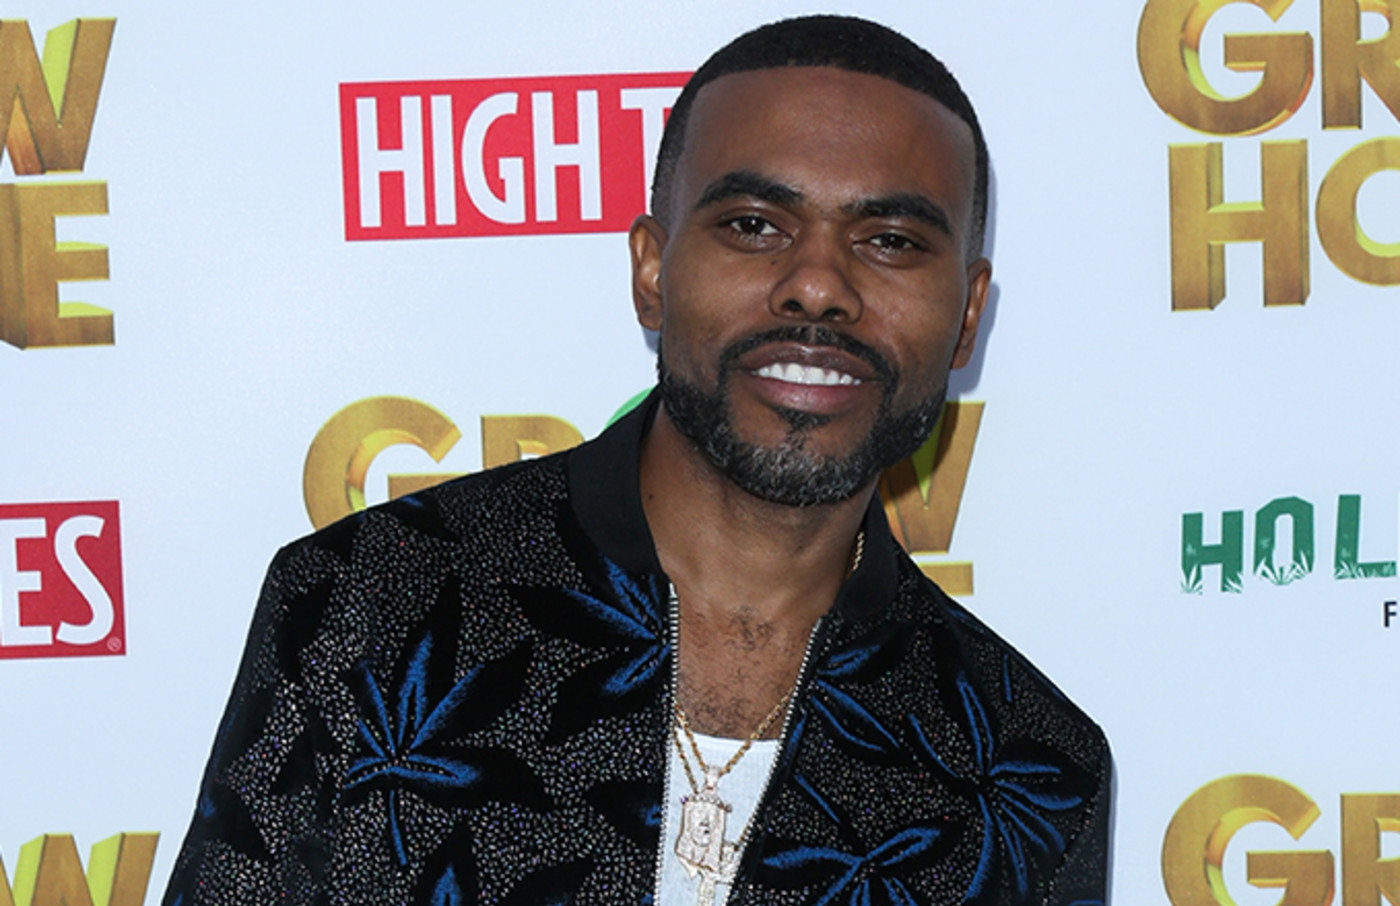 This is a photo of Lil Duval.